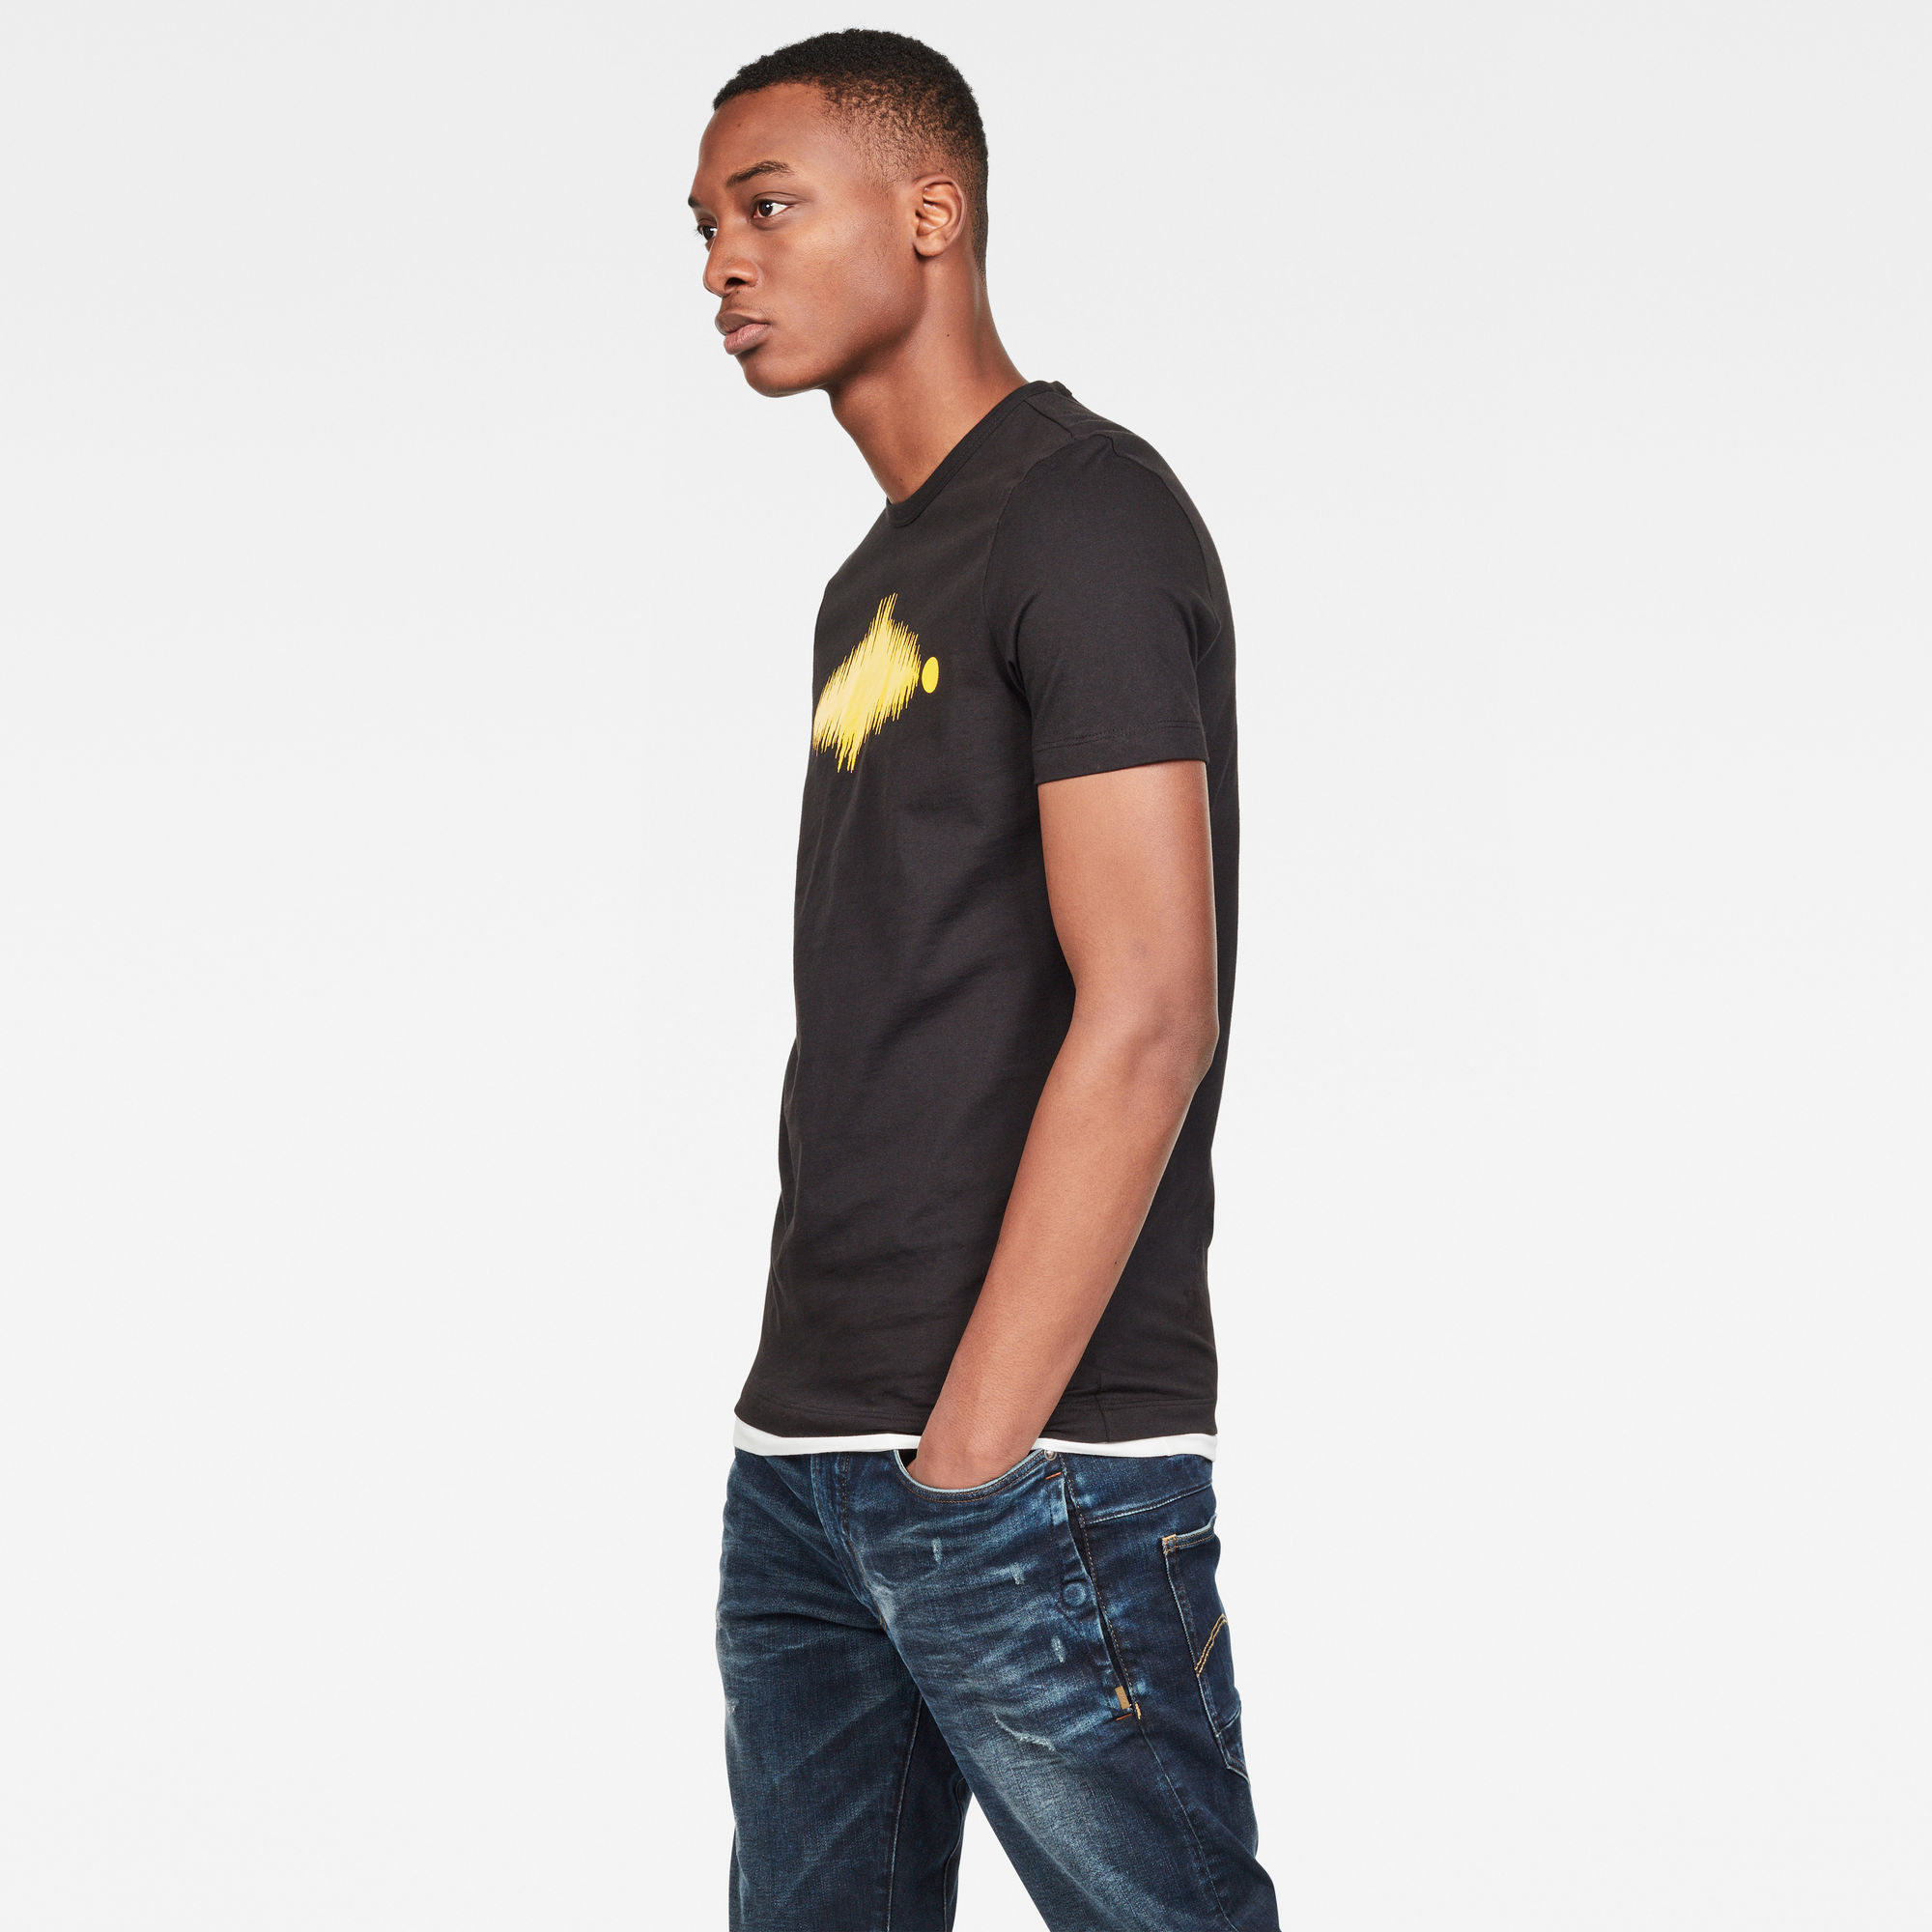 Dence 2 Graphic T-shirt